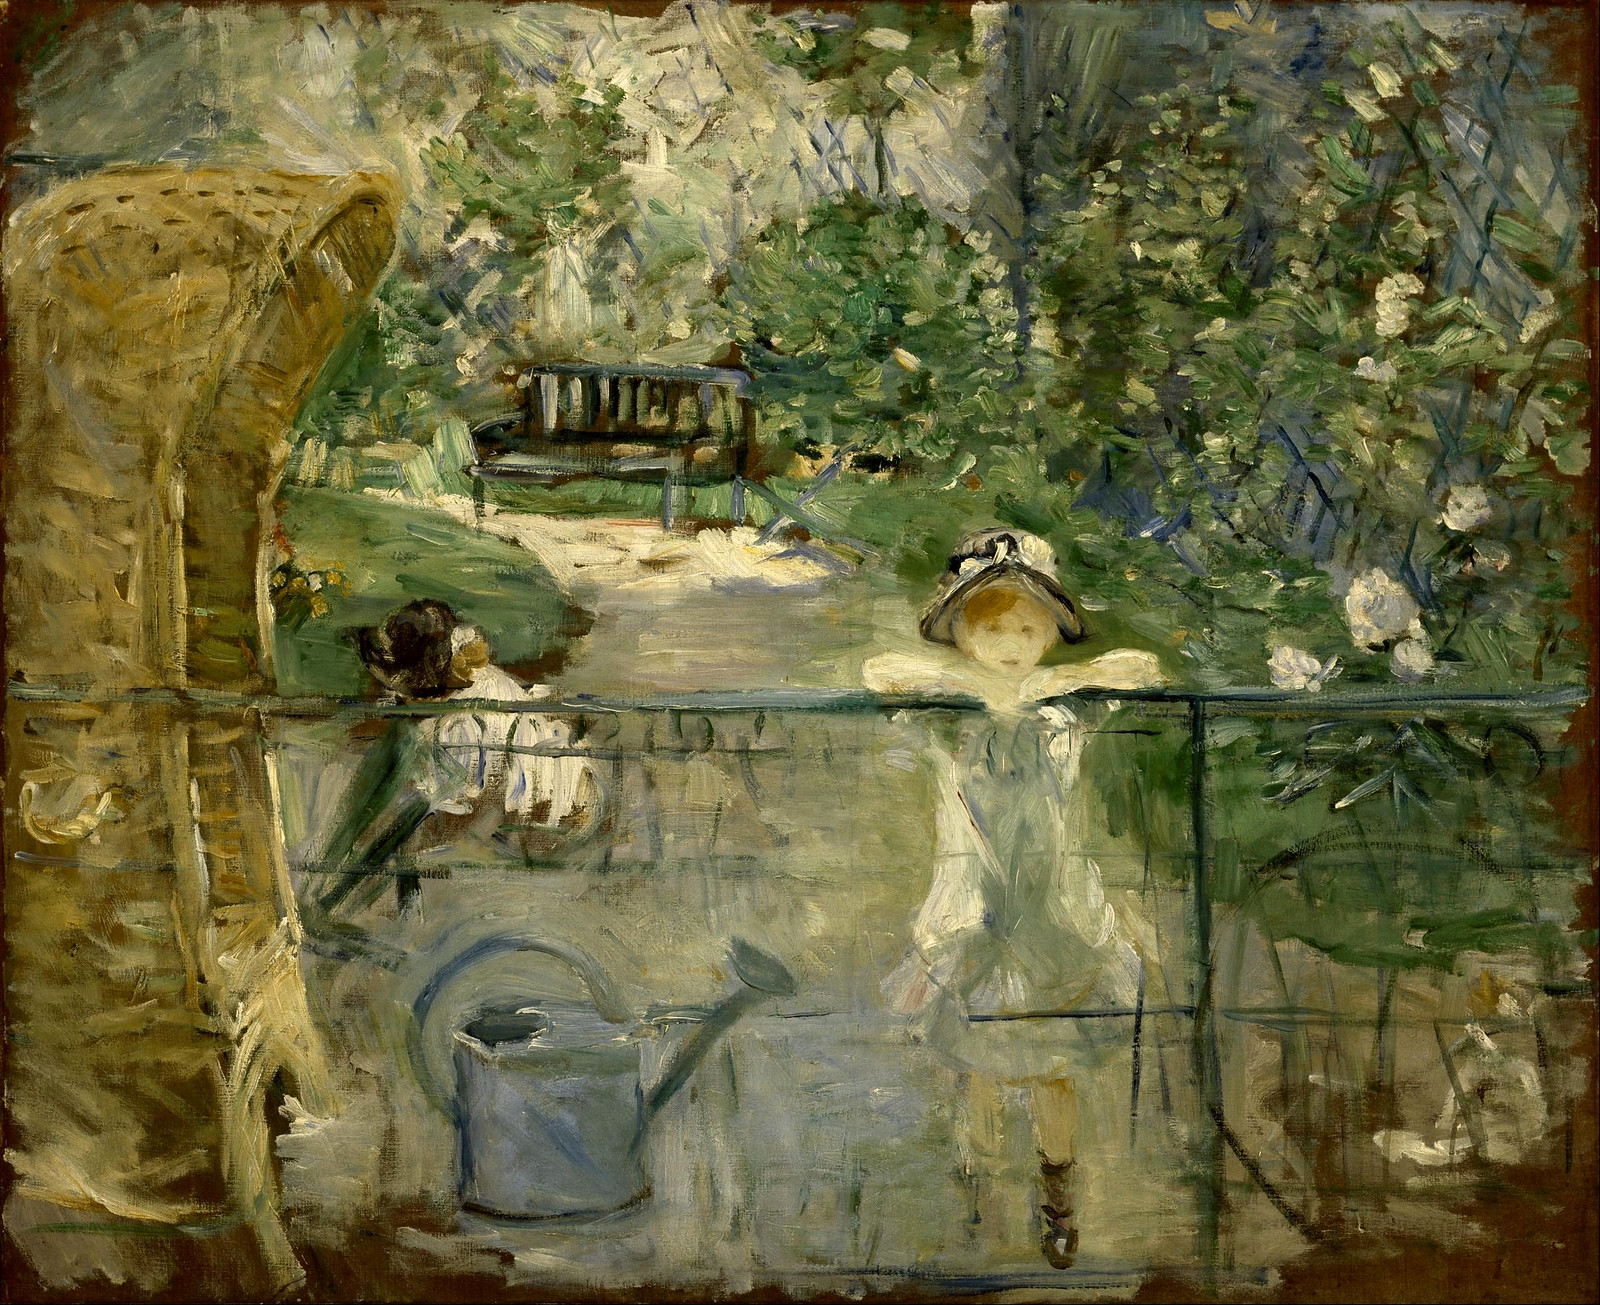 The Basket Chair by Berthe Morisot, 1882